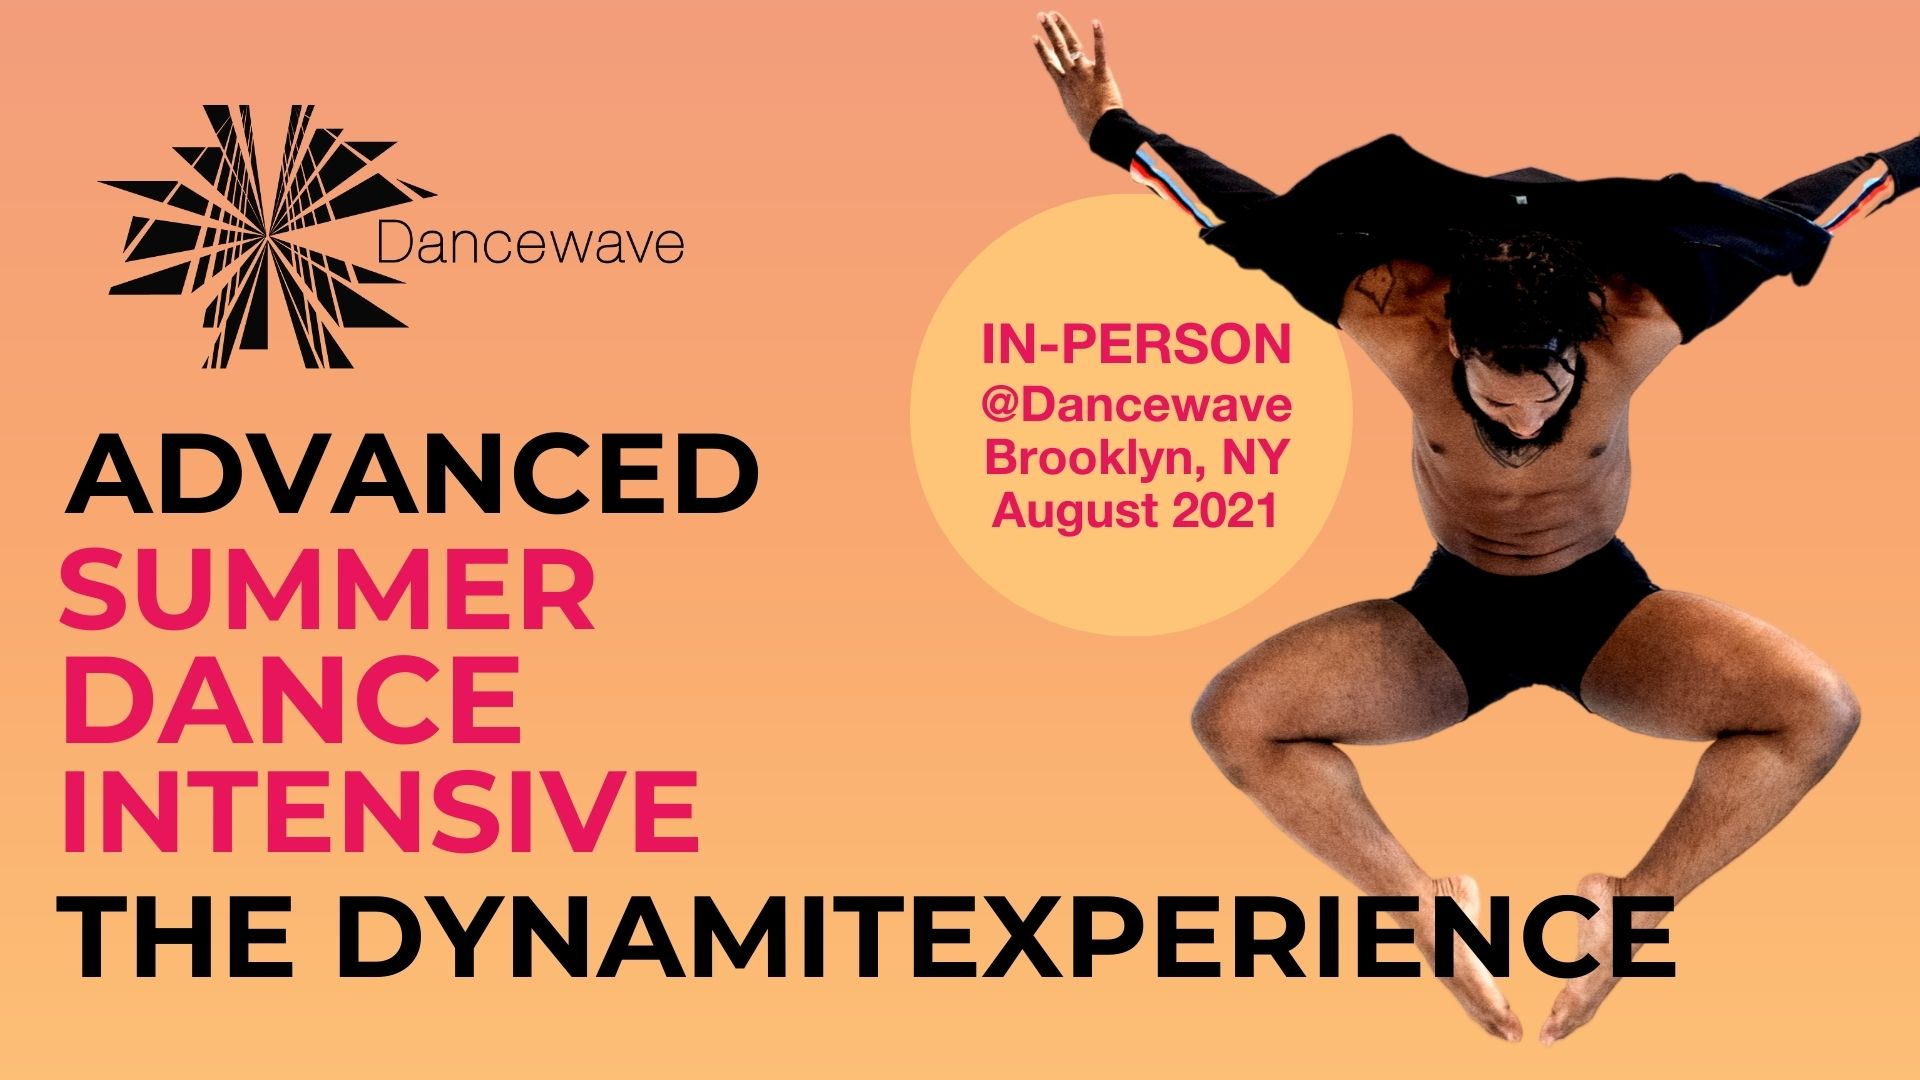 Audition Alert: Dancewave IN-PERSON Summer Dance Intensive: Advanced Repertory with The DynamitExperience